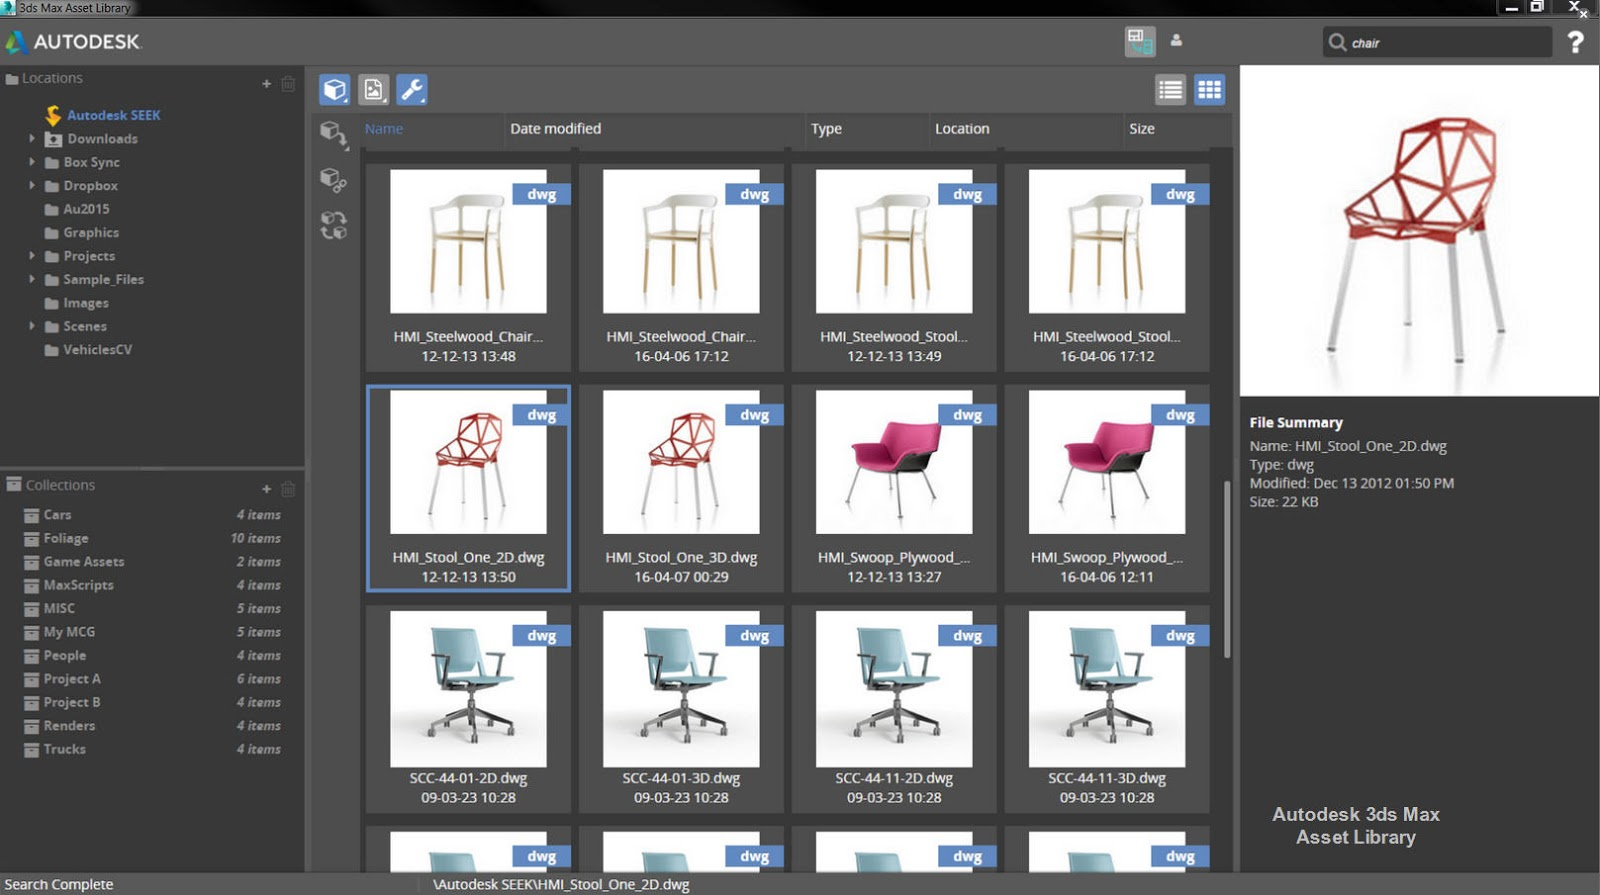 Download 3ds max 2012 free trial version autodesk